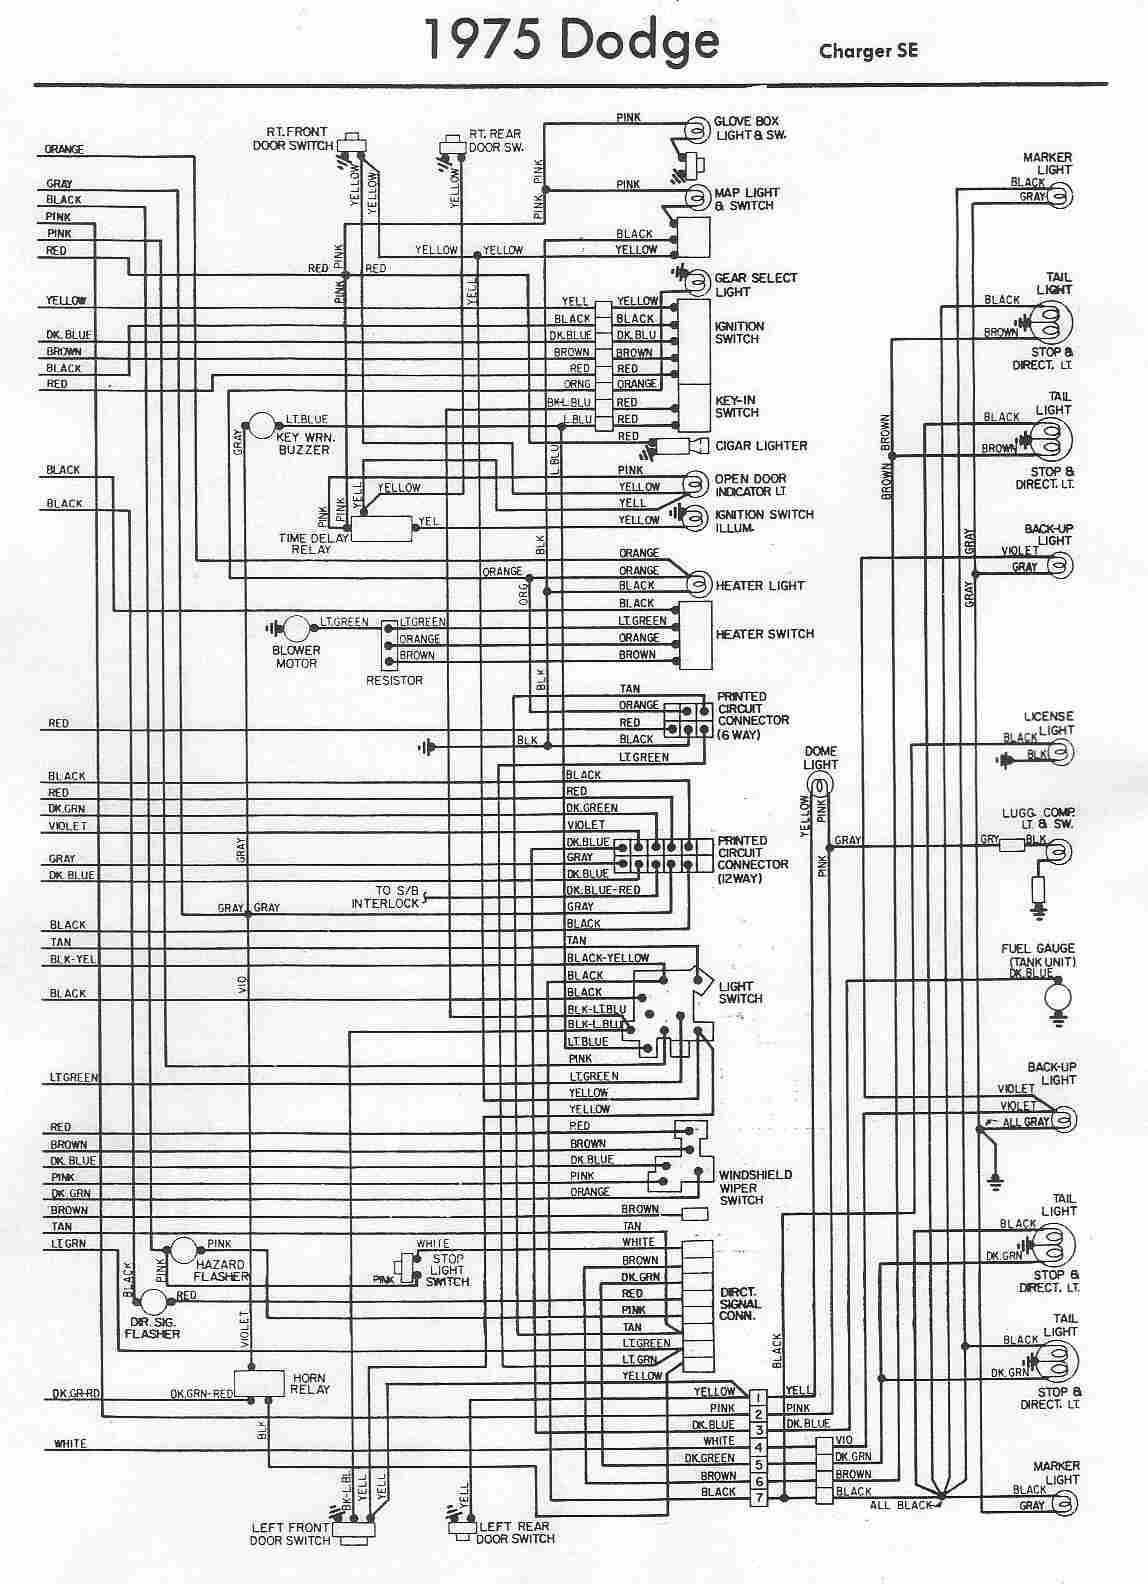 Dodge Car Manuals Wiring Diagrams Pdf Fault Codes Diagram In Addition Vw Beetle Also Electrical Download